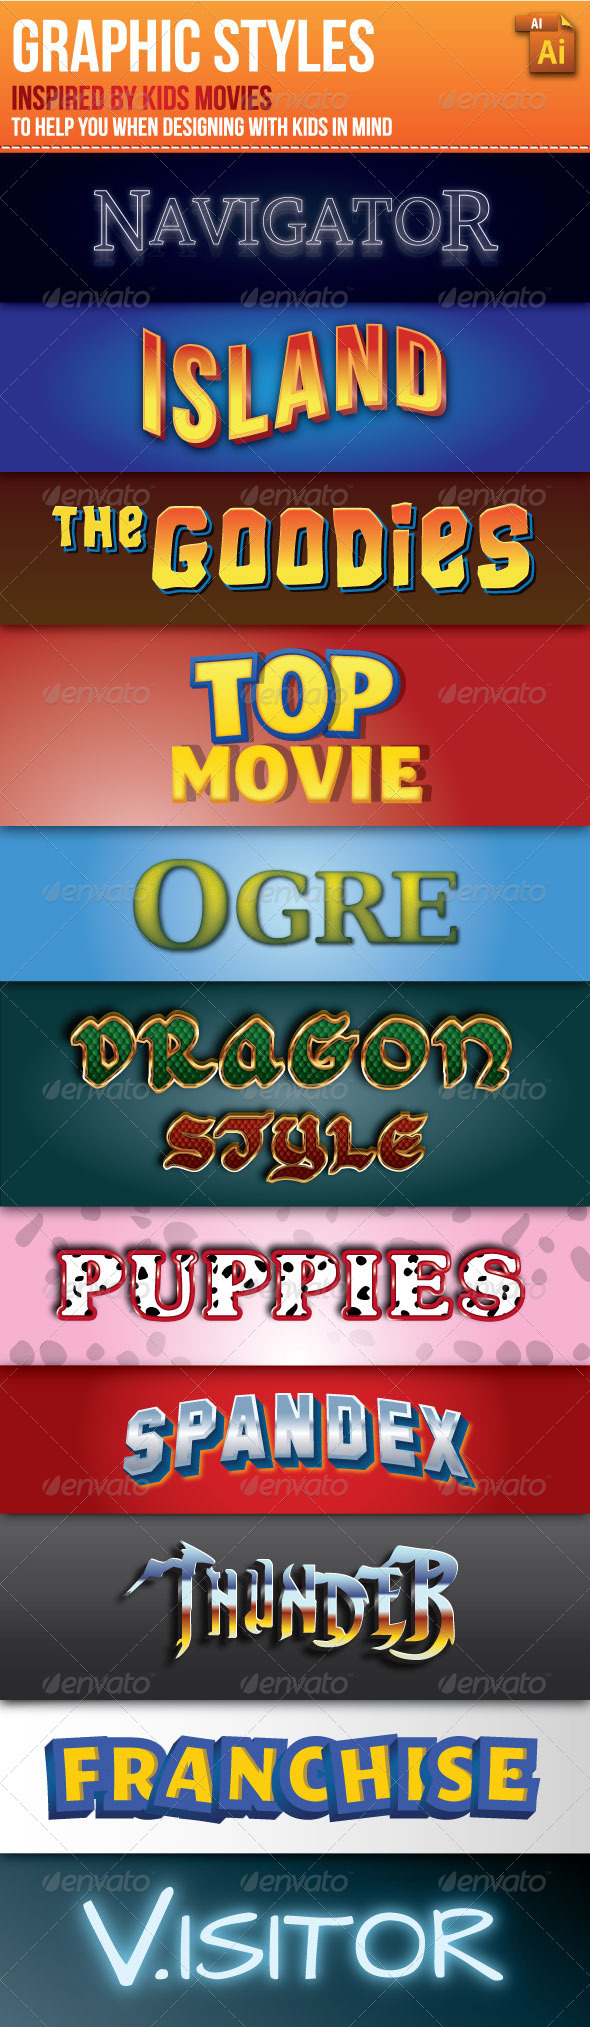 GraphicRiver Graphic Styles Inspired by Kids Movies 2756260